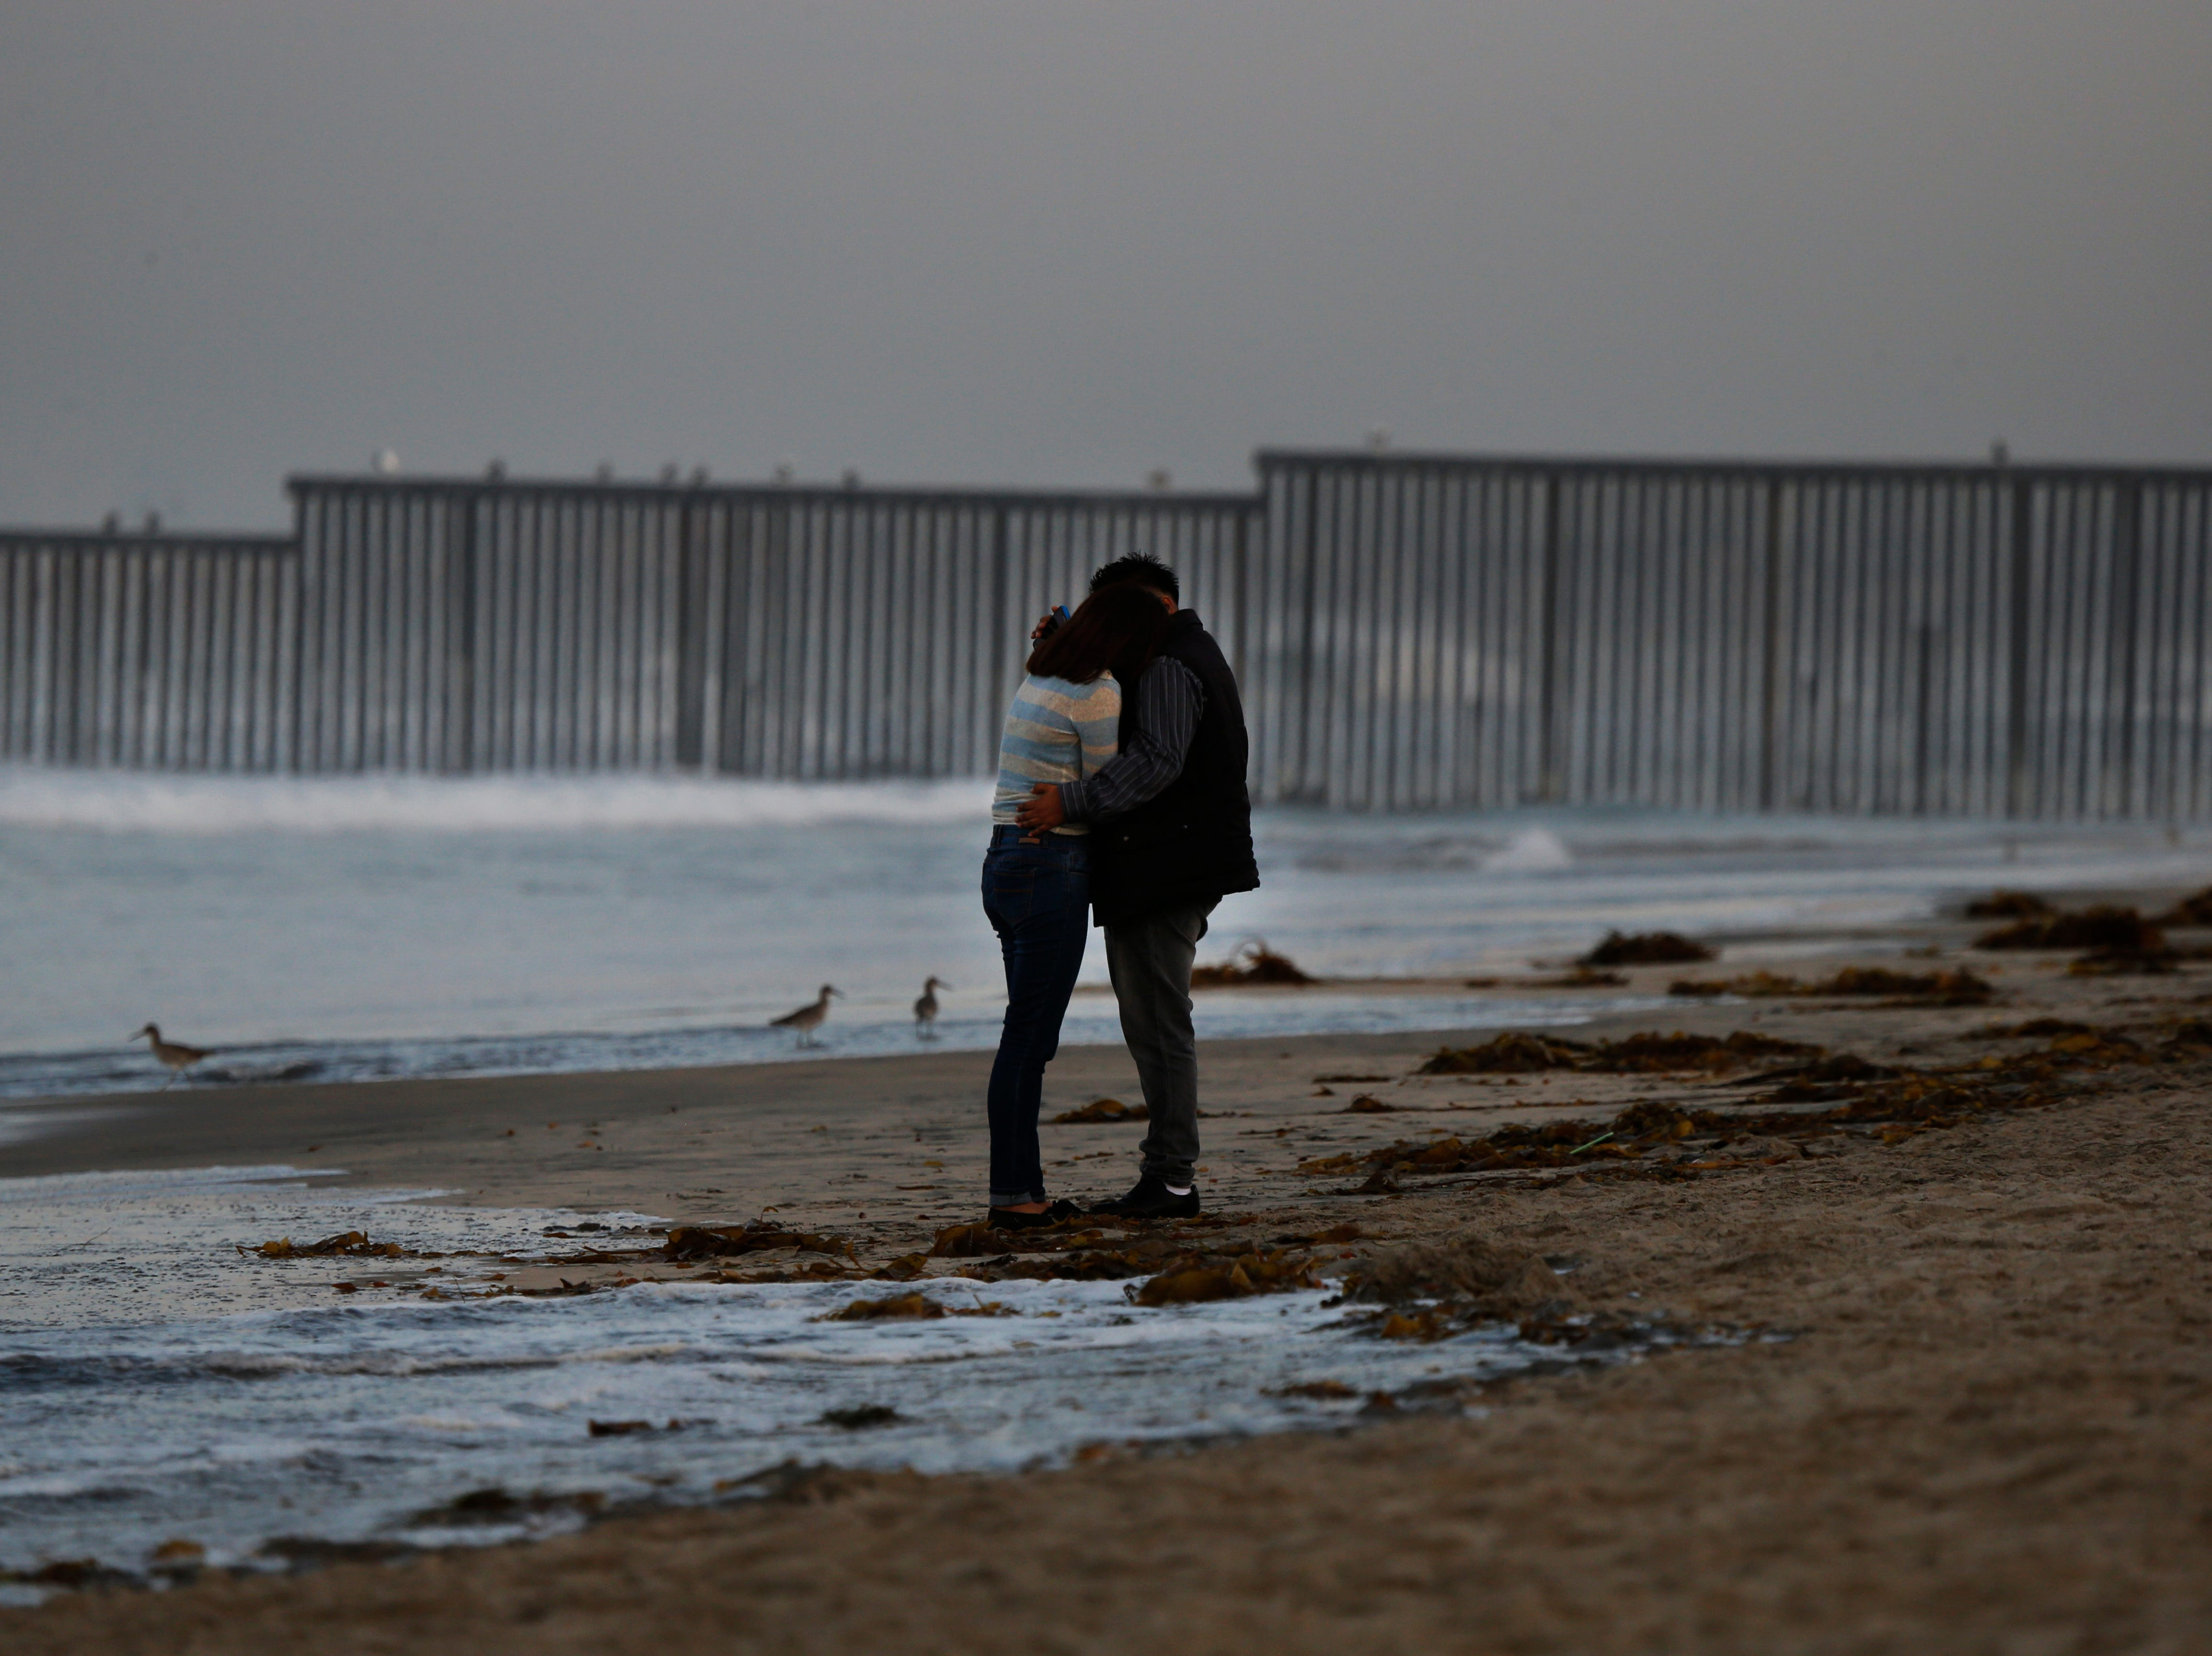 A couple embrace on the shore of Playa Tijuana backdropped by the barriers separating Mexico and the United States, where the border meets the Pacific Ocean, Saturday, Nov. 17, 2018.